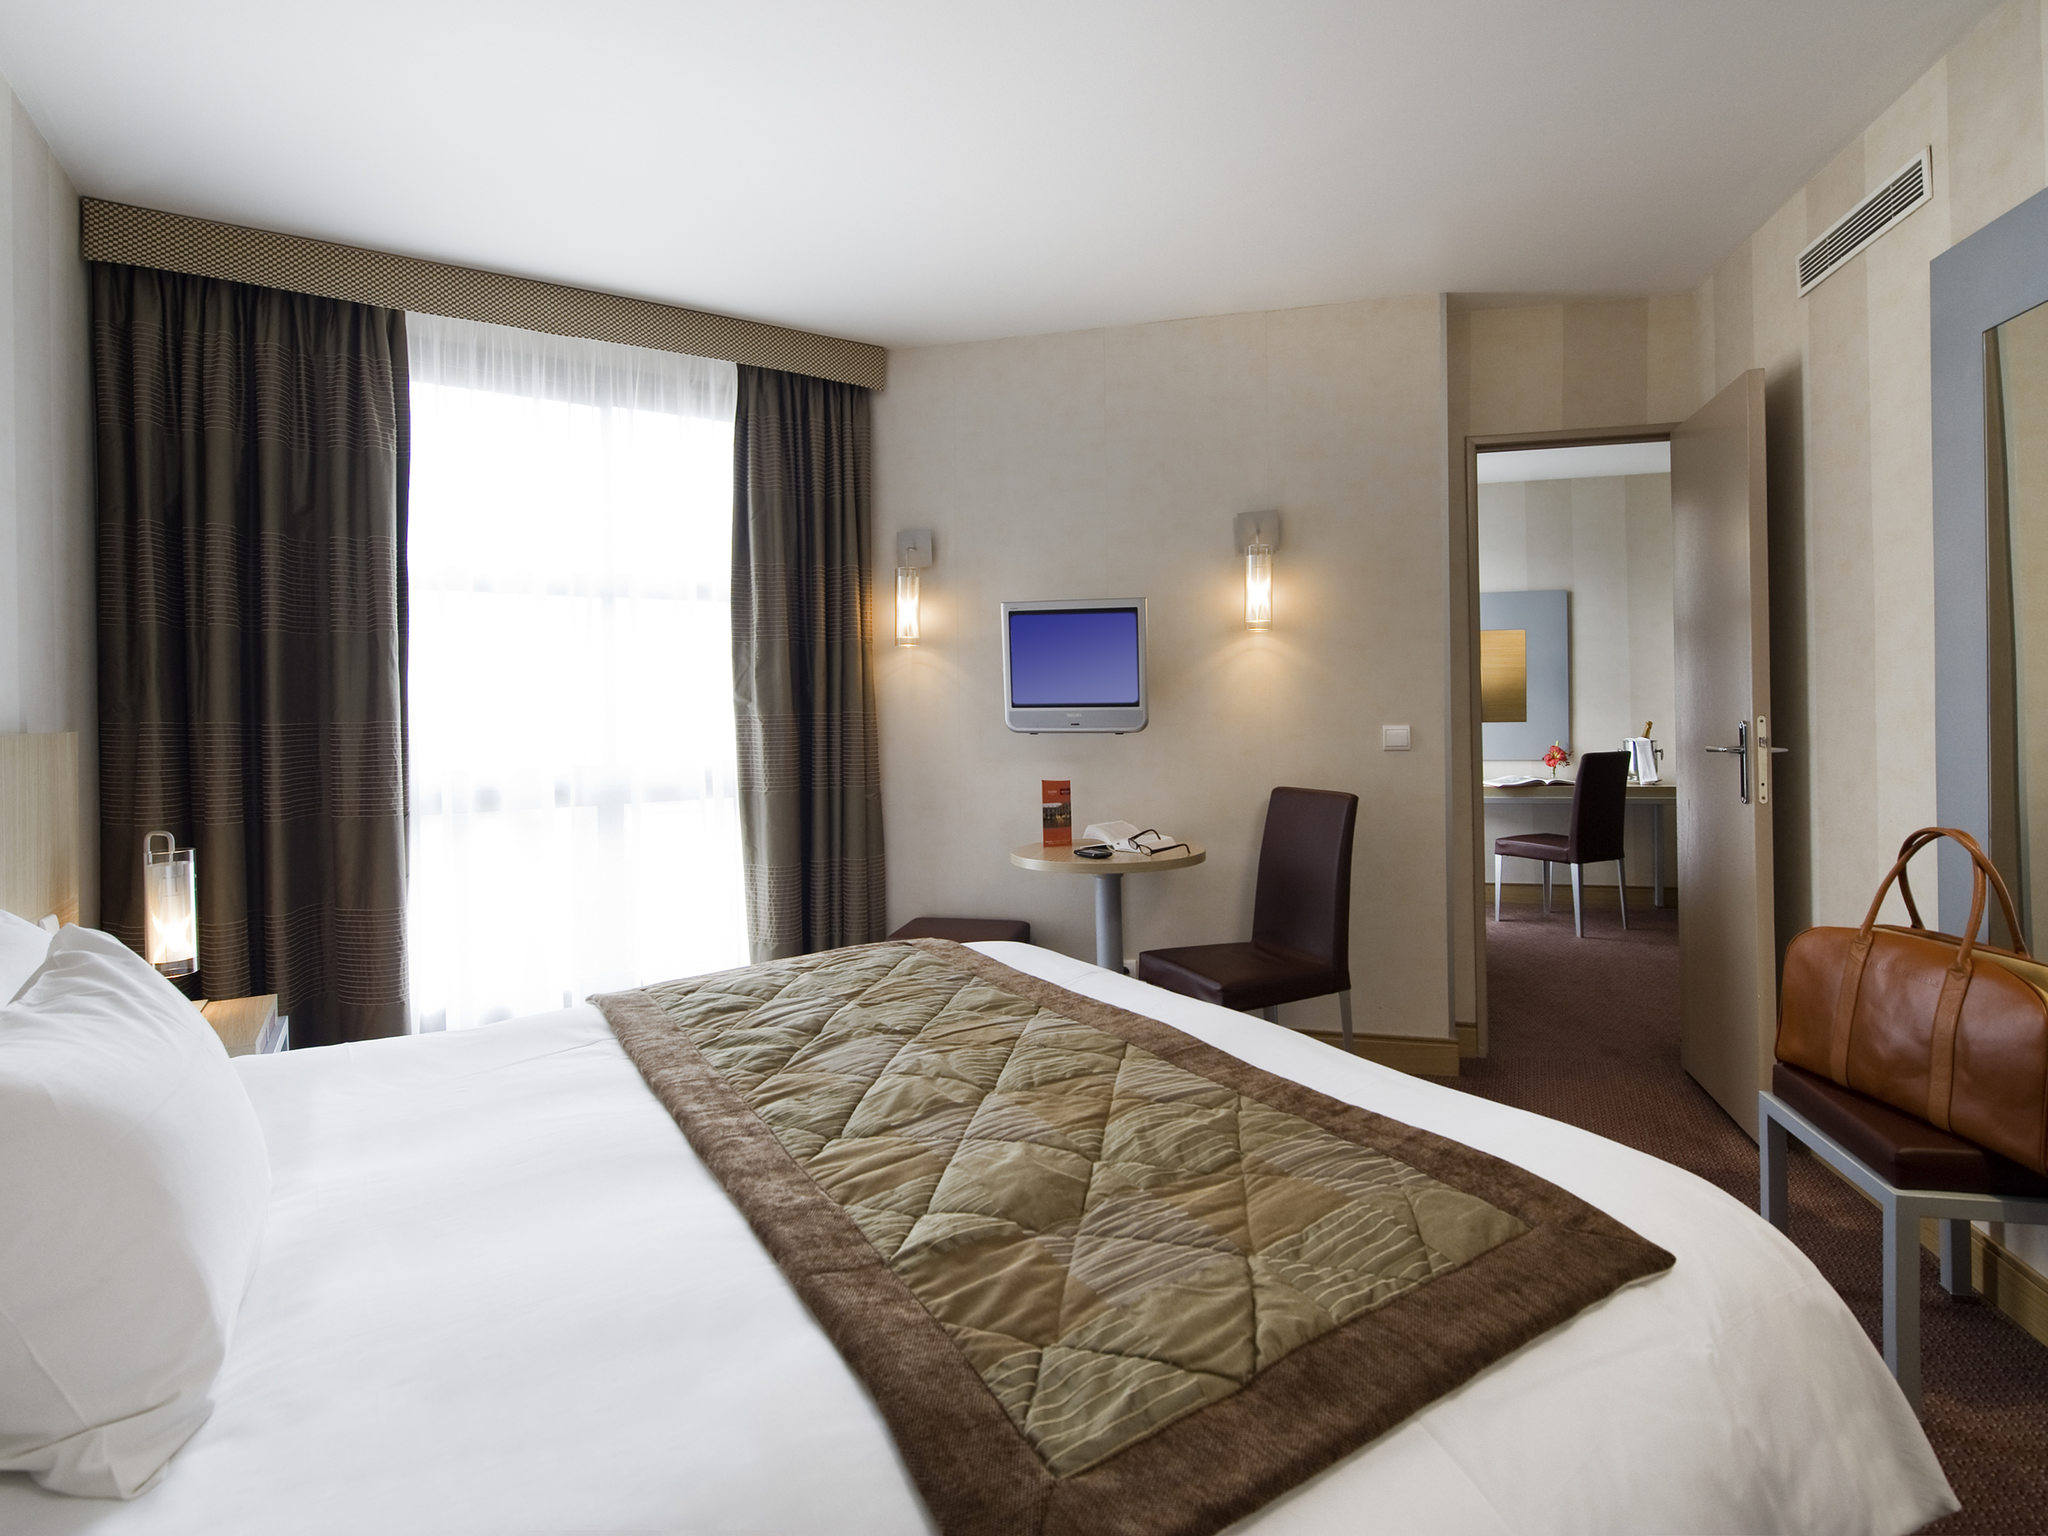 H tel paris h tel mercure paris gobelins place d 39 italie for Hotel paris x